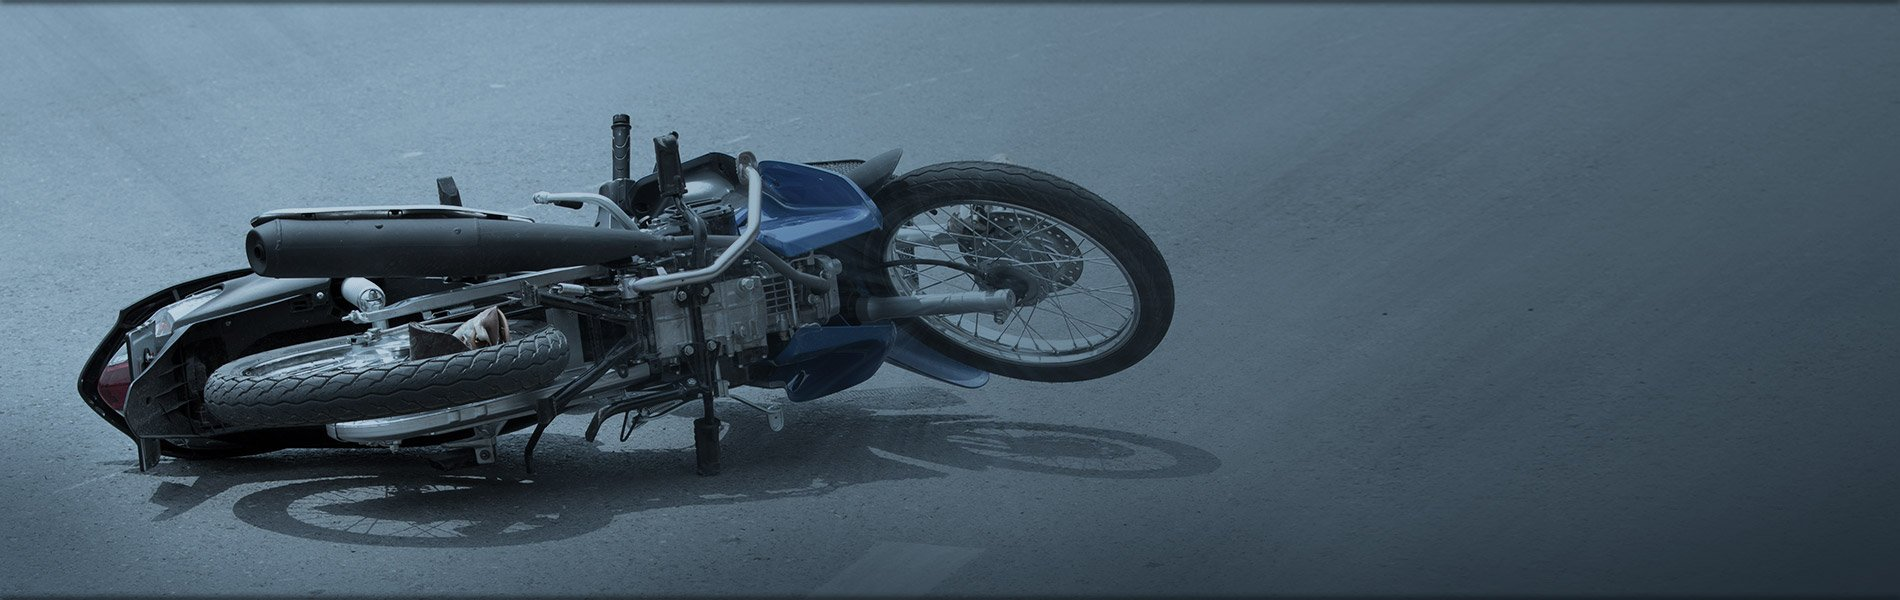 Motorcycle Accidents Attorneys In Gainesville